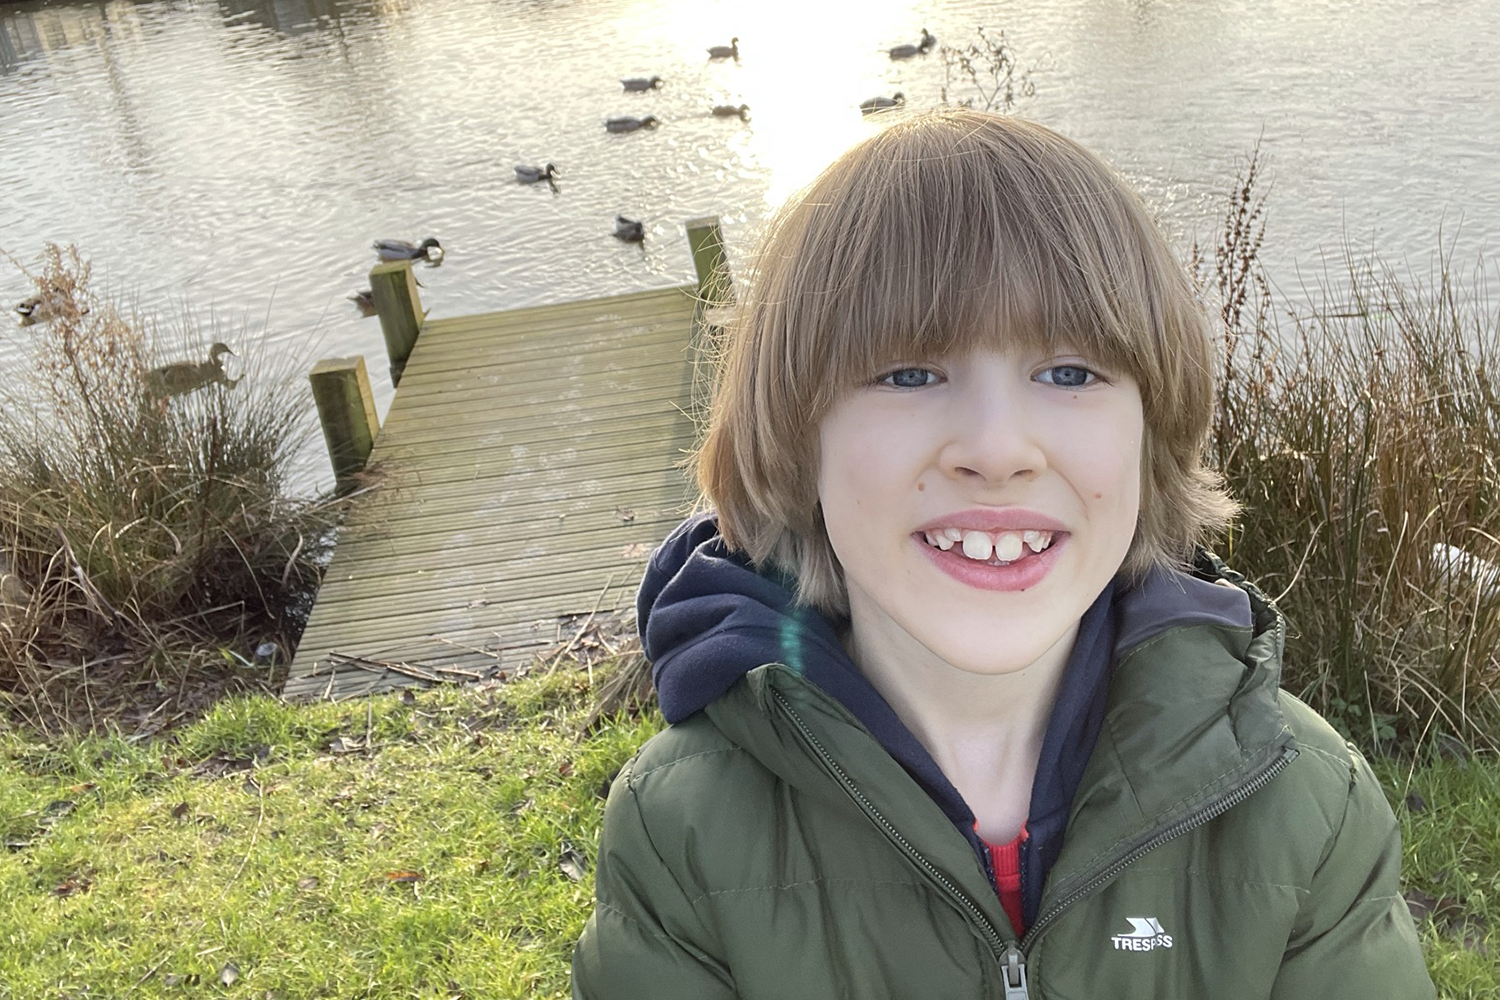 Toby with a duck pond behind him